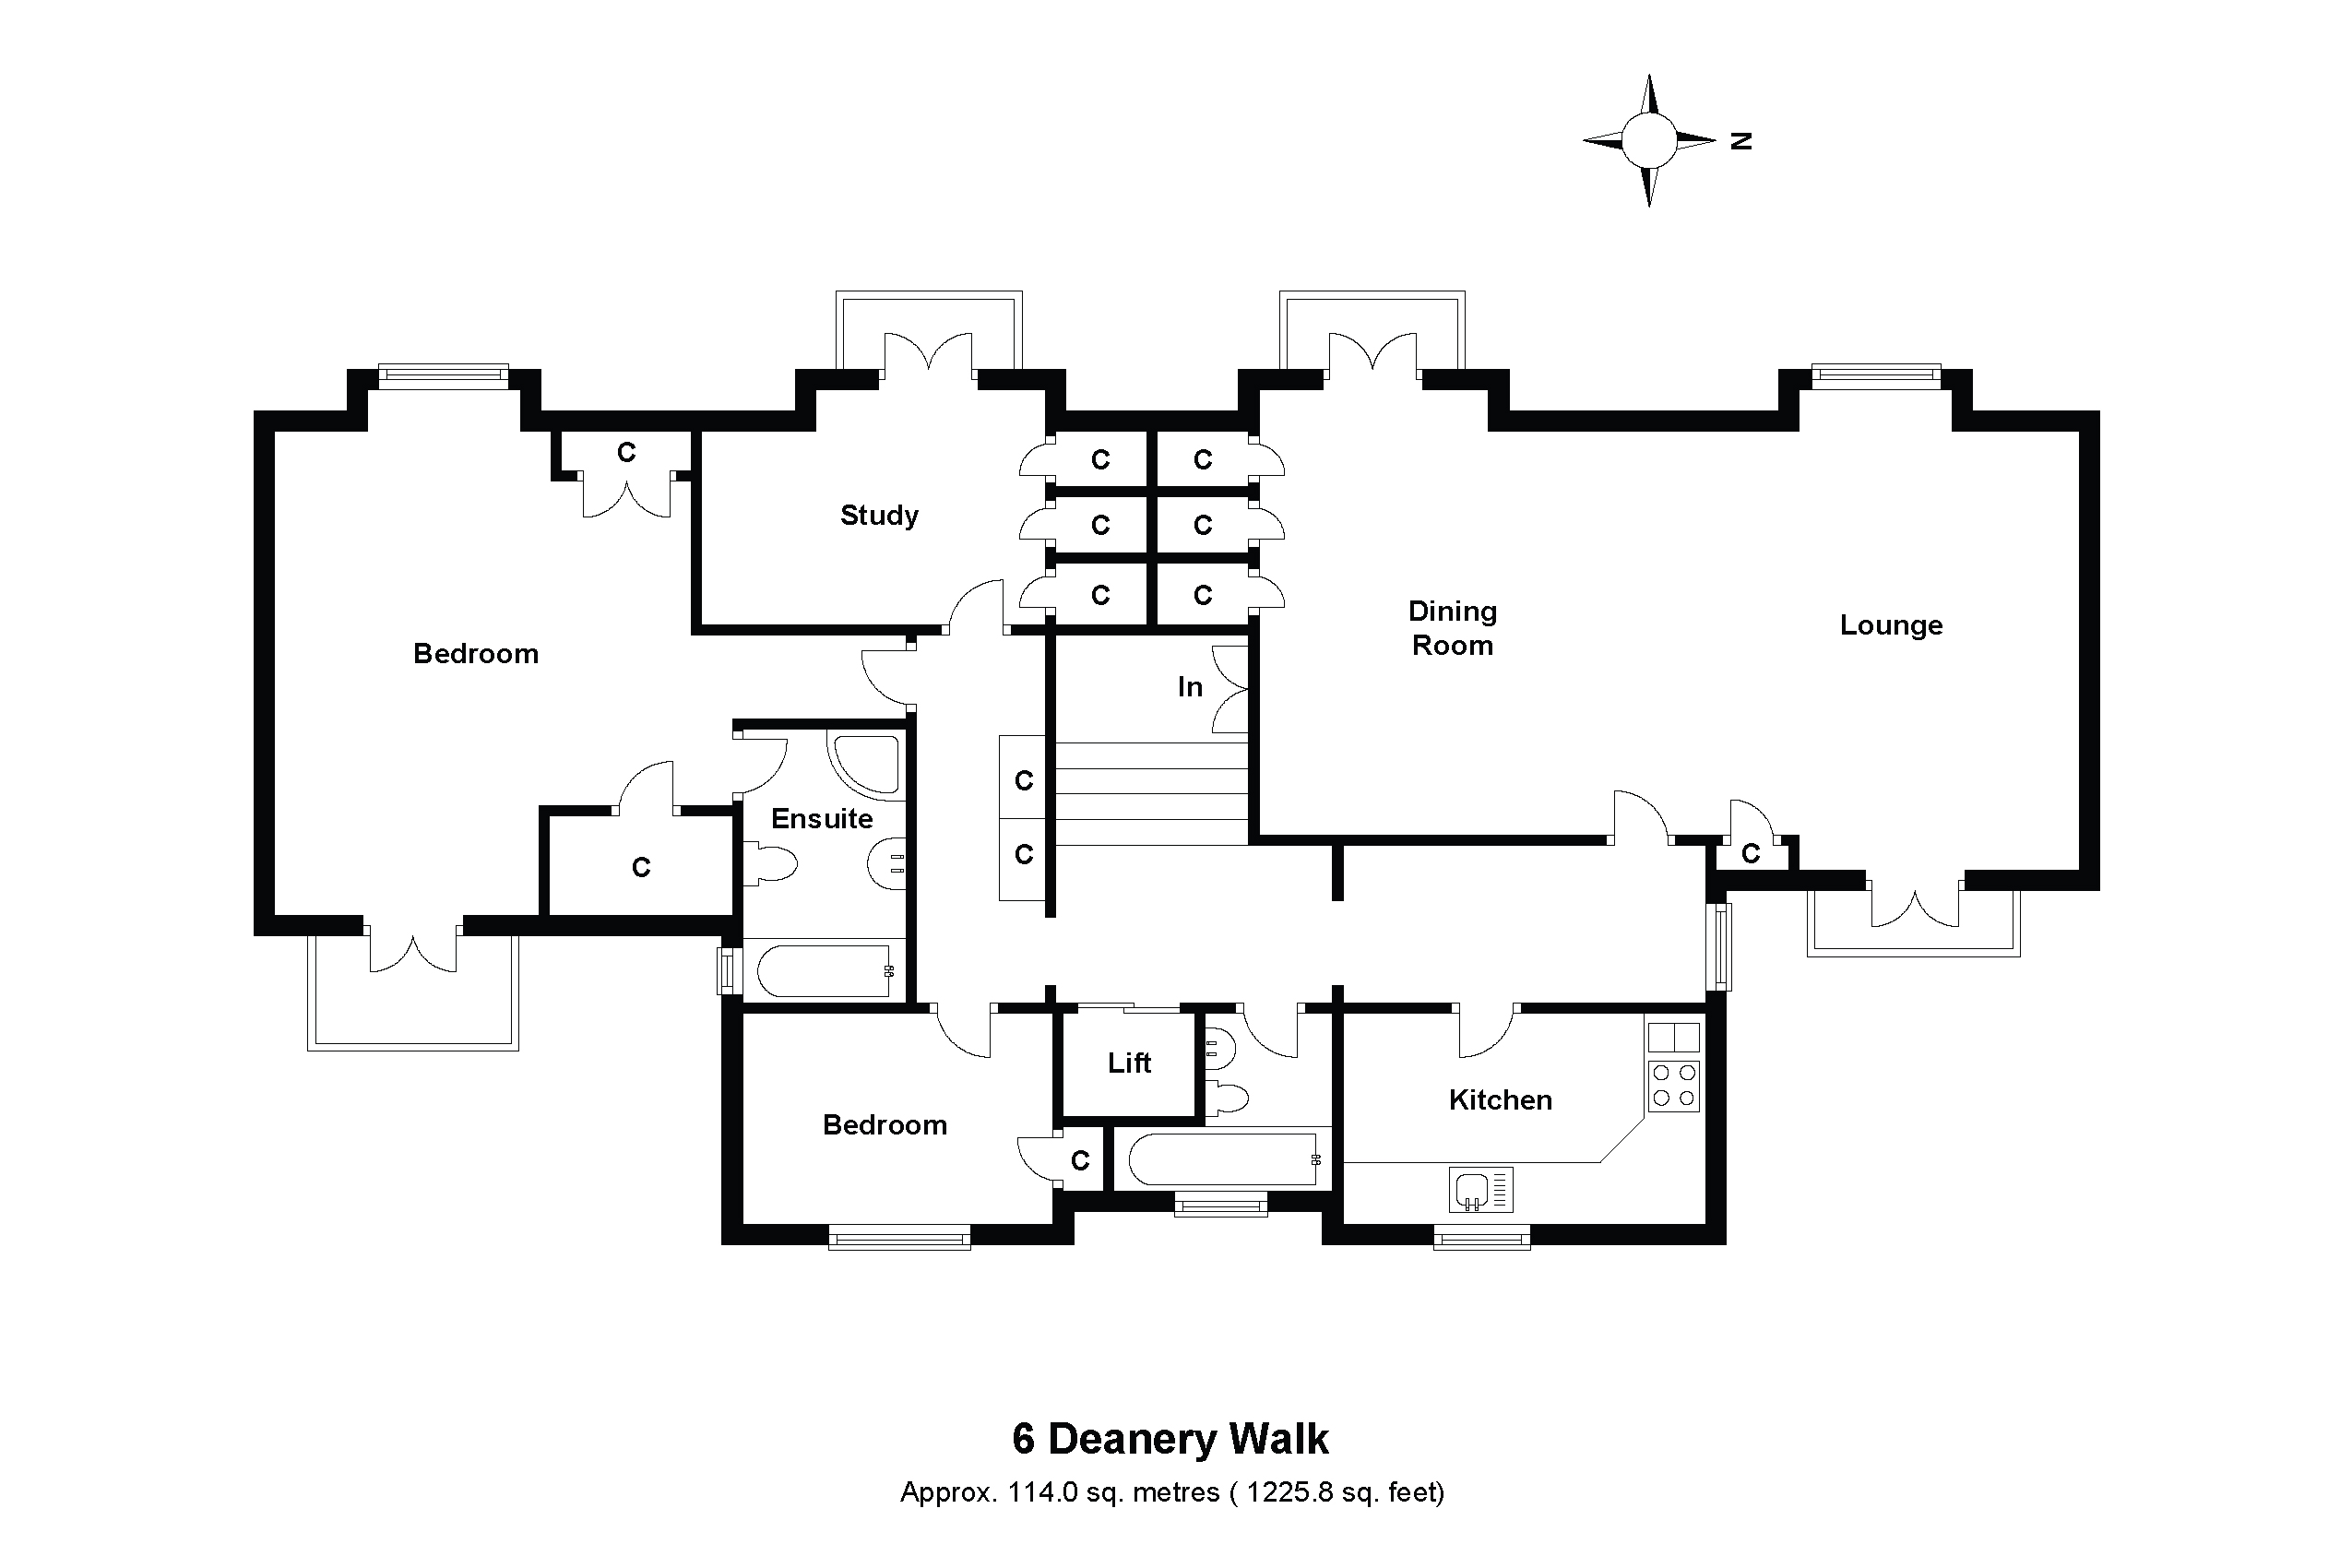 The Penthouse, 5 & 6 Deanery Walk Floorplan